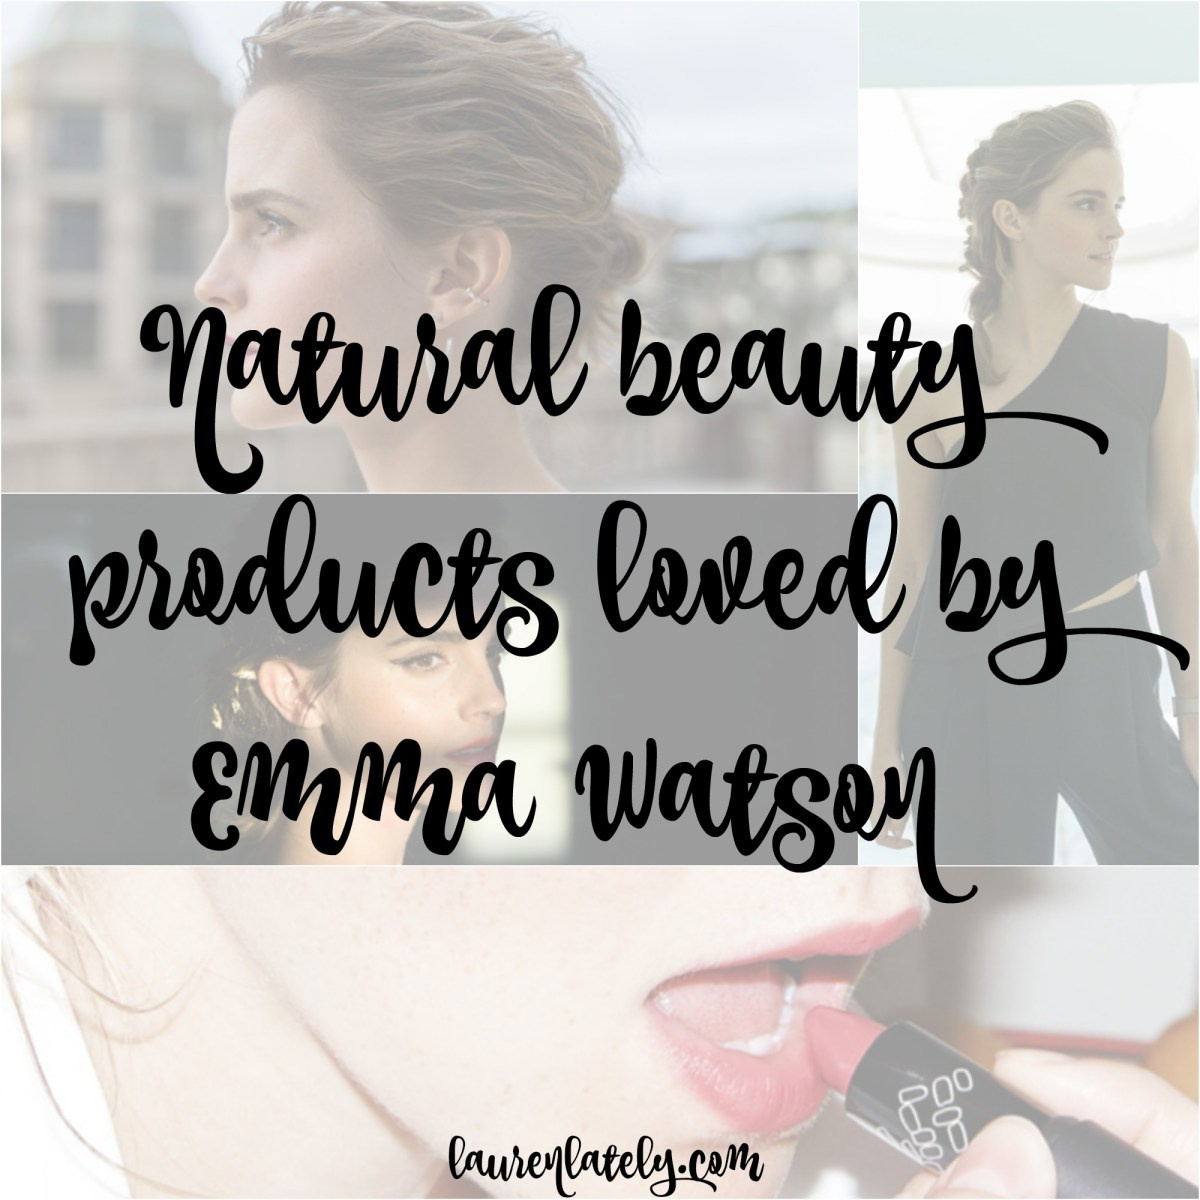 Natural beauty products loved by Emma Watson